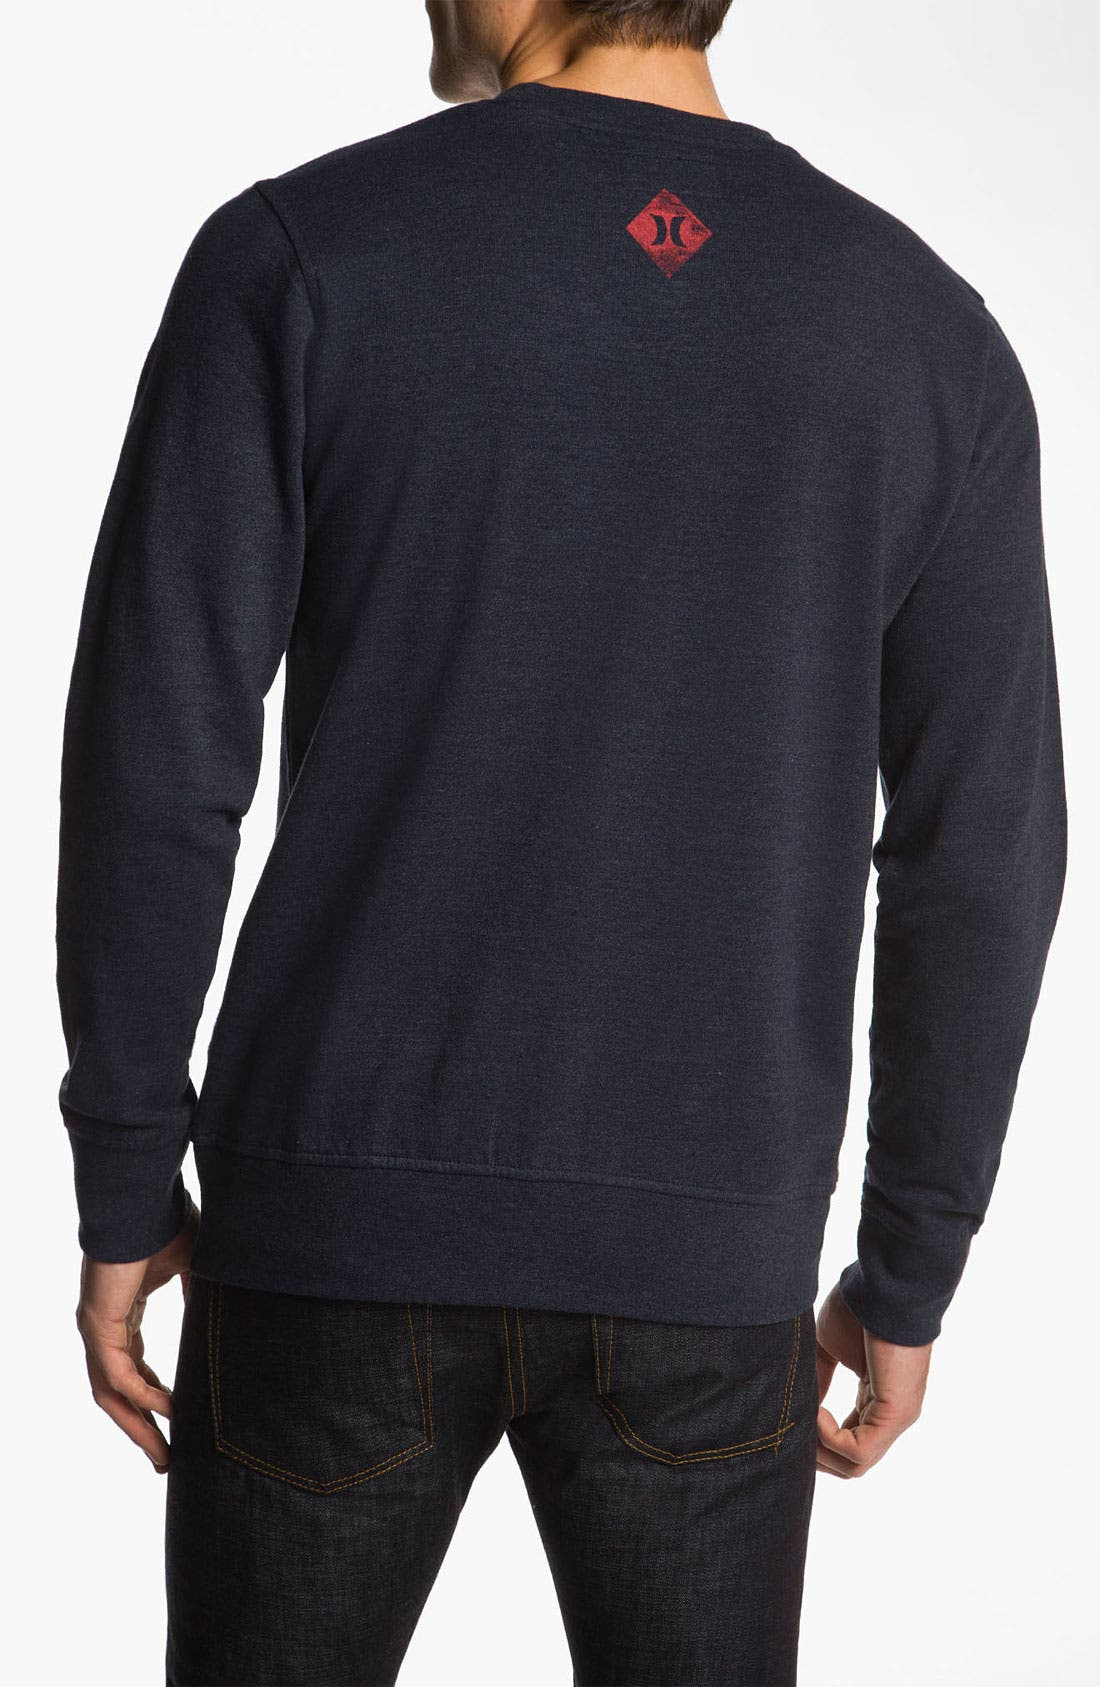 Alternate Image 2  - Hurley 'Striker' Crewneck Sweatshirt